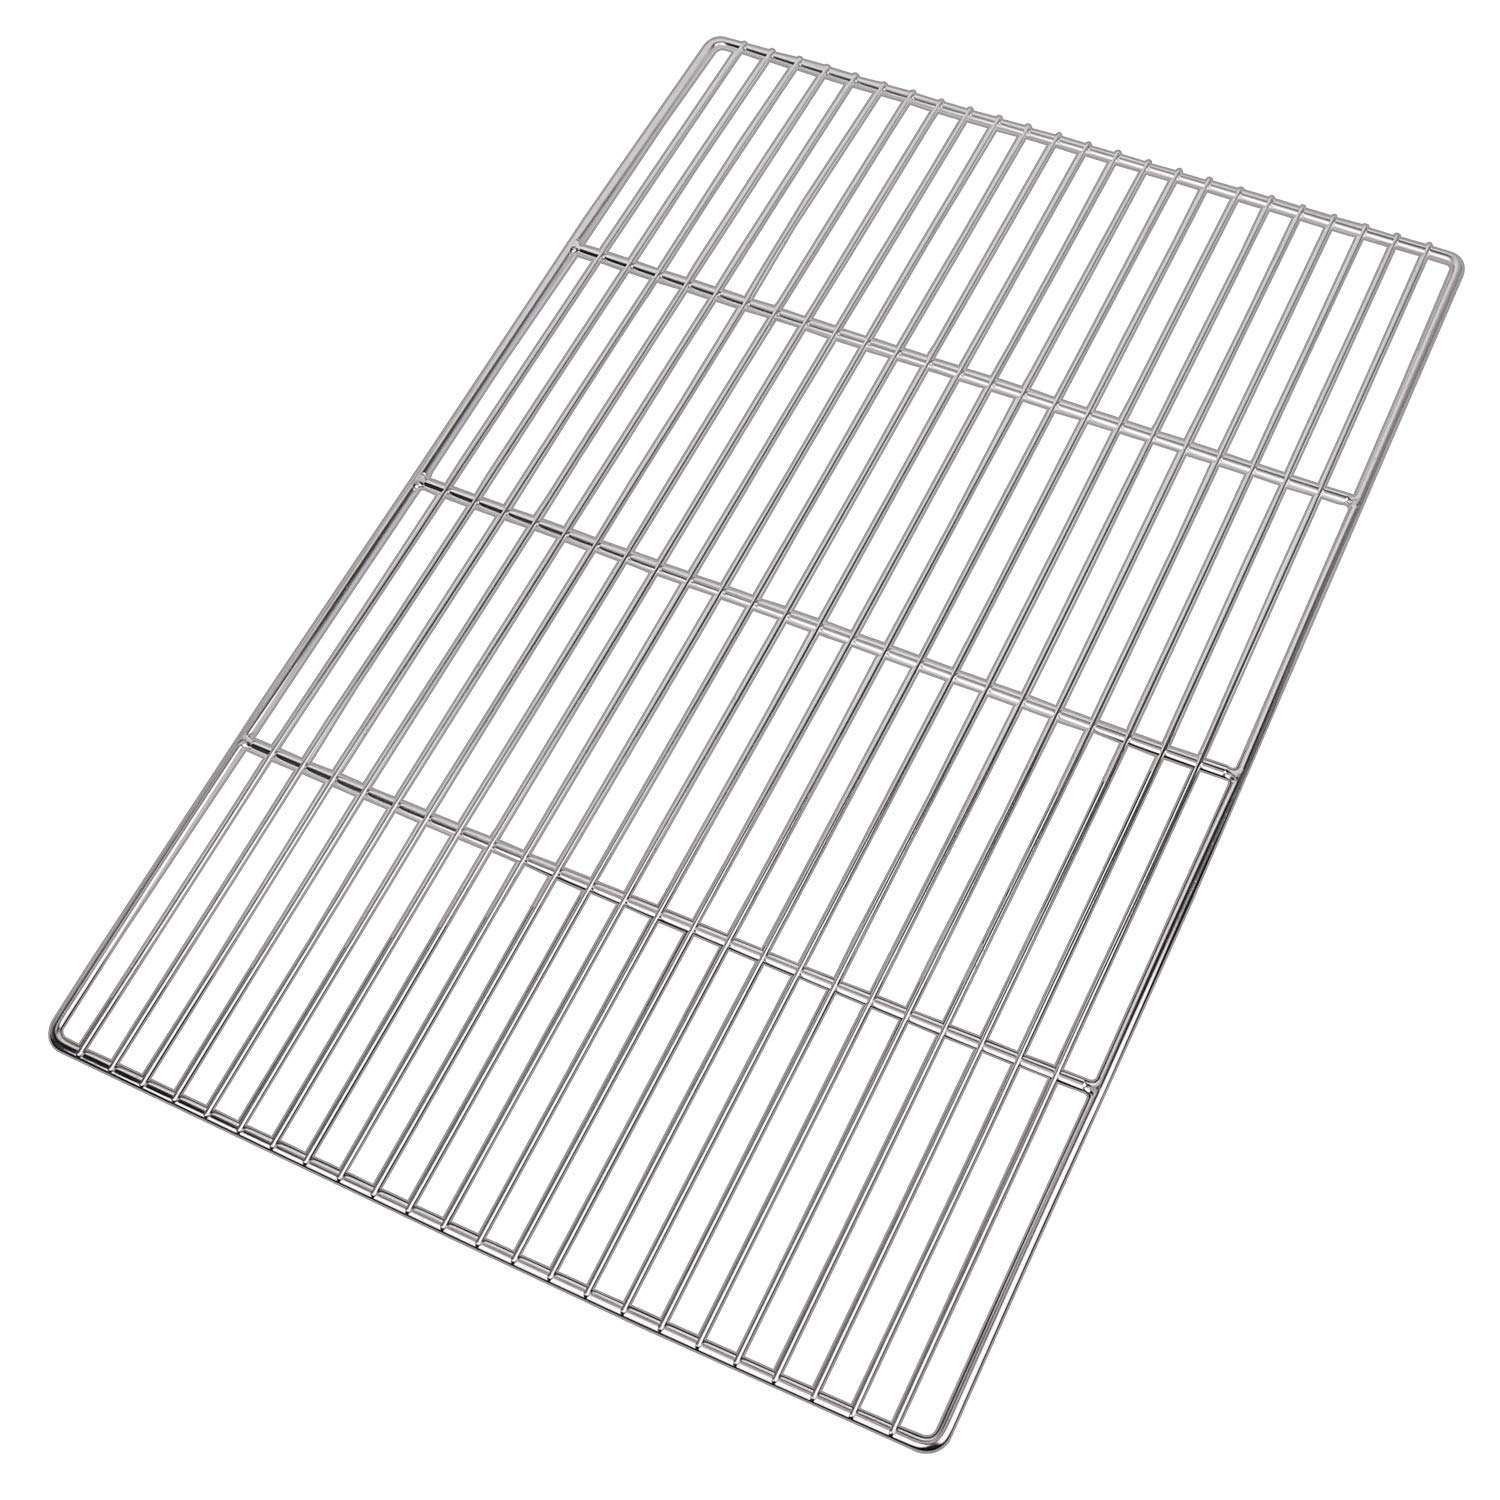 Stainless steel Barbecue grate rectangular 60 x 40 cm rust free for charcoal grill, gas grill